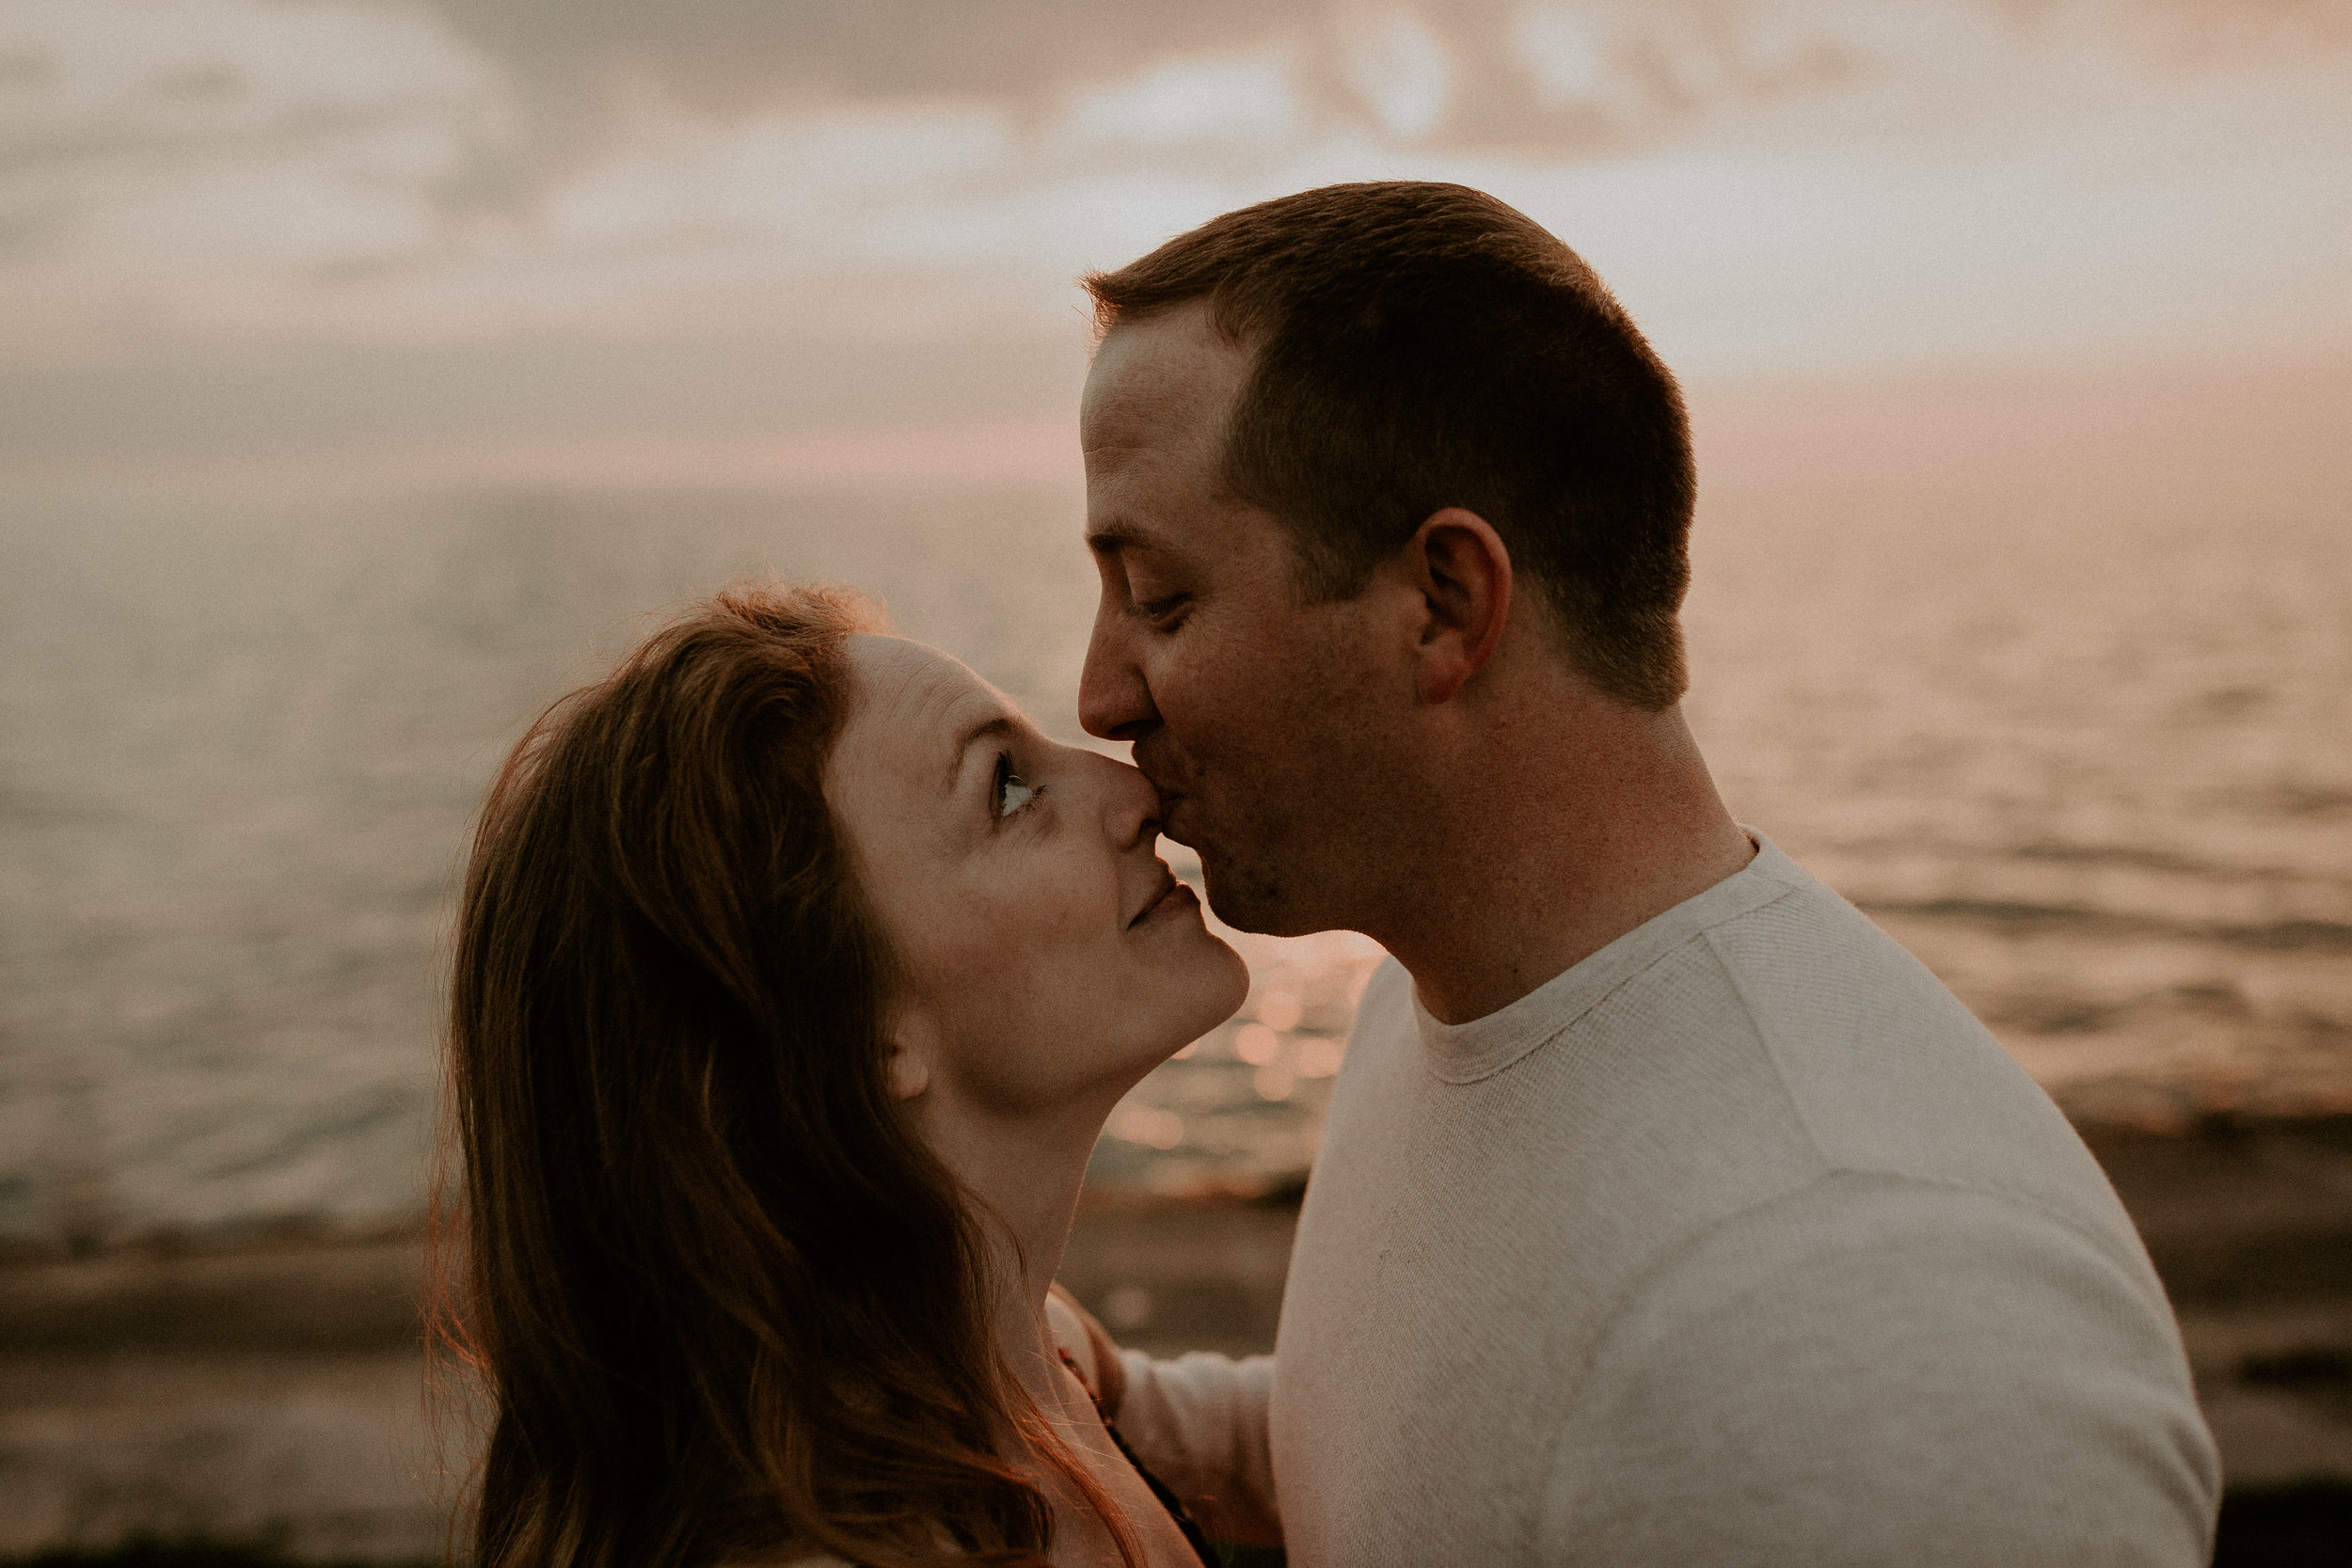 Montrose_Beach_Chicago_Engagement_Session-EDIT-78.JPG